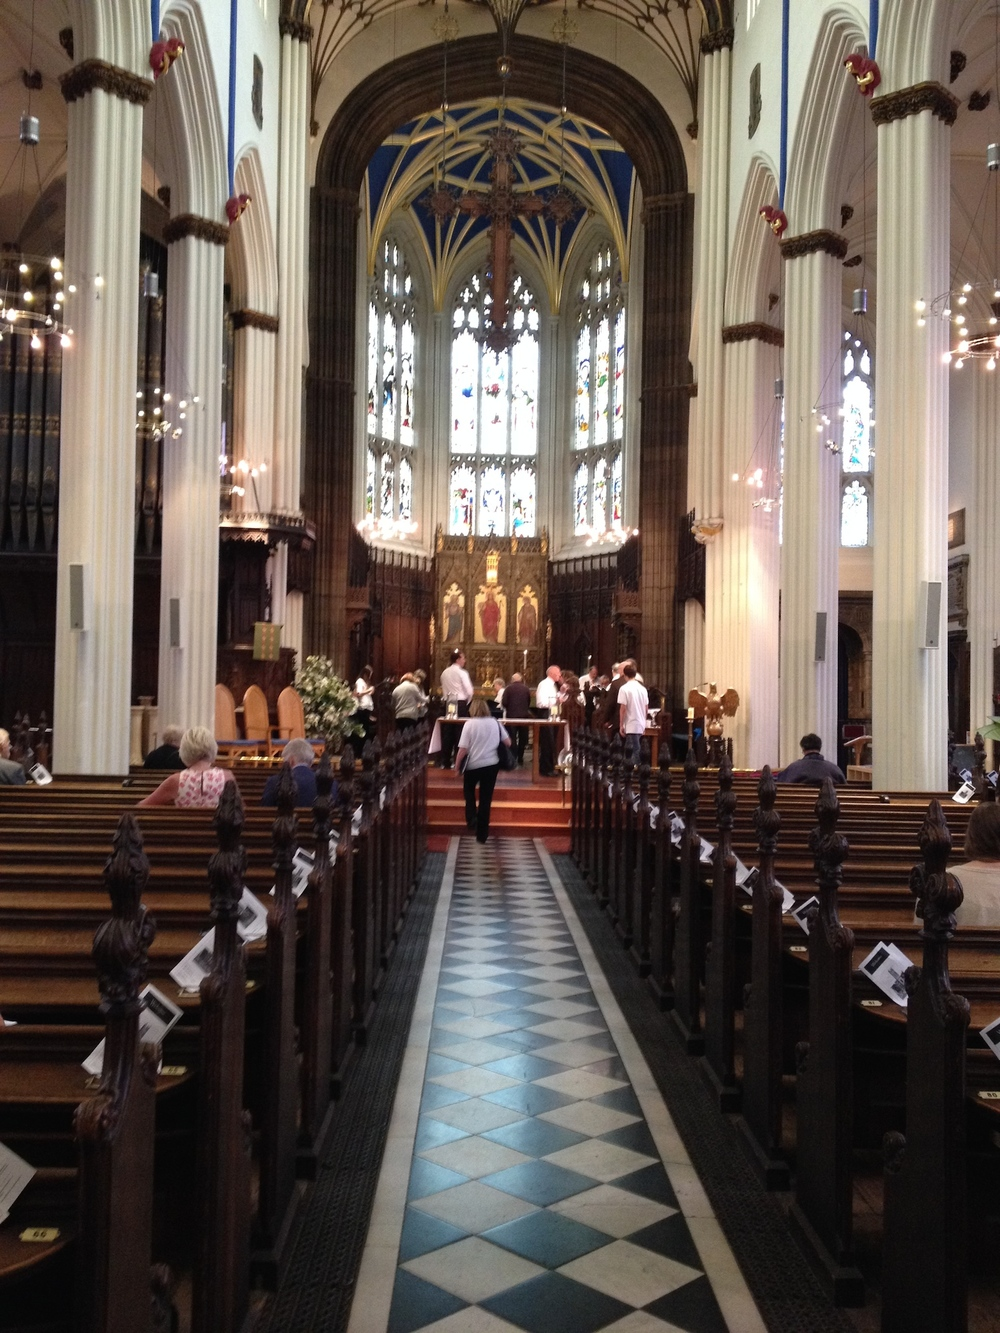 St. John's nave prior to the 10:30 am service on June 28.